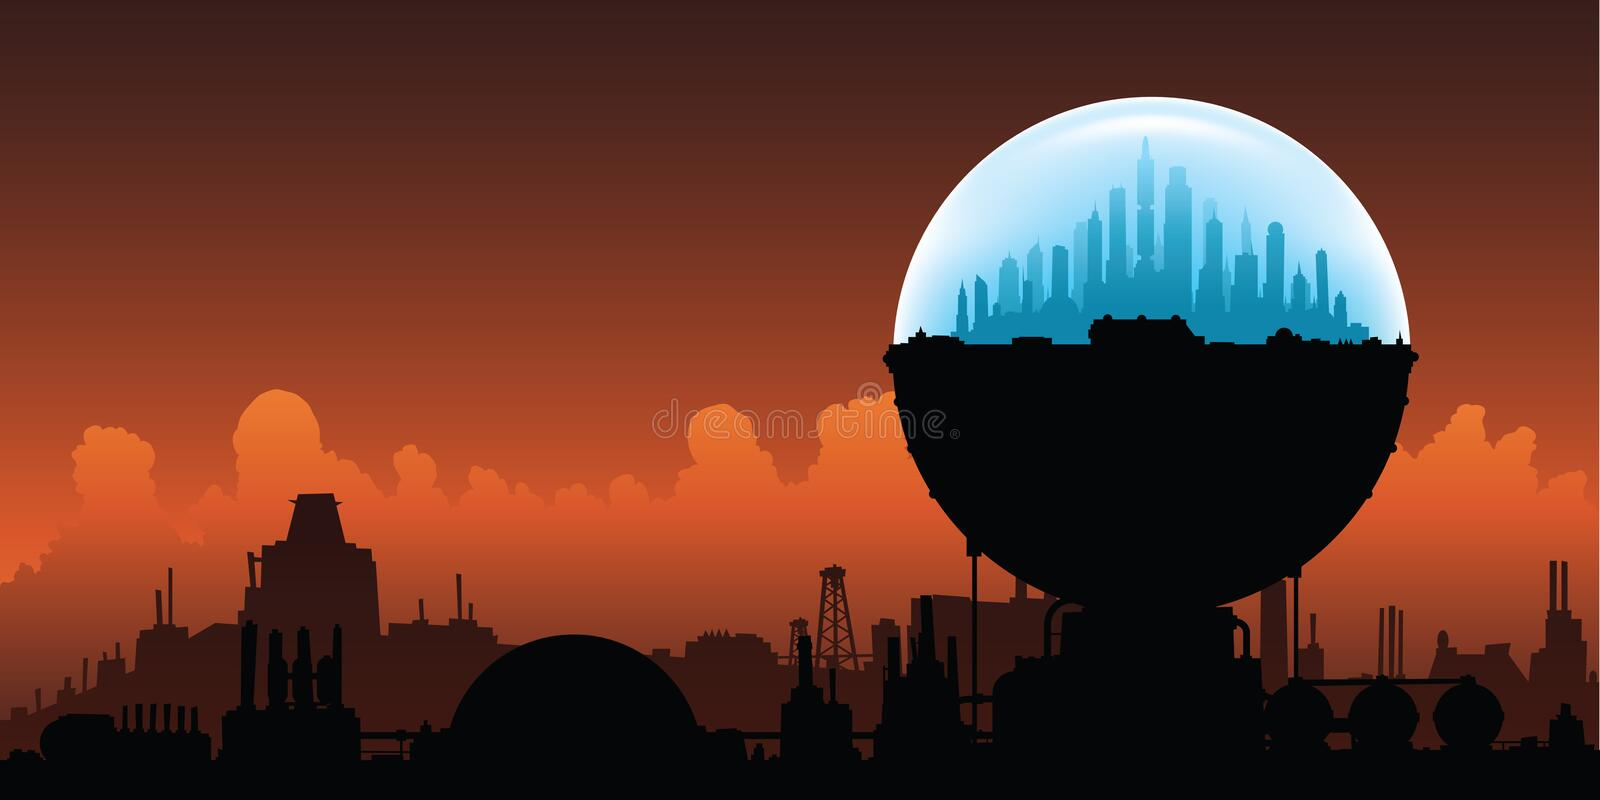 Domed Oasis in Desolation. A domed city is an oasis on a planet destroyed by climate diasaster royalty free illustration